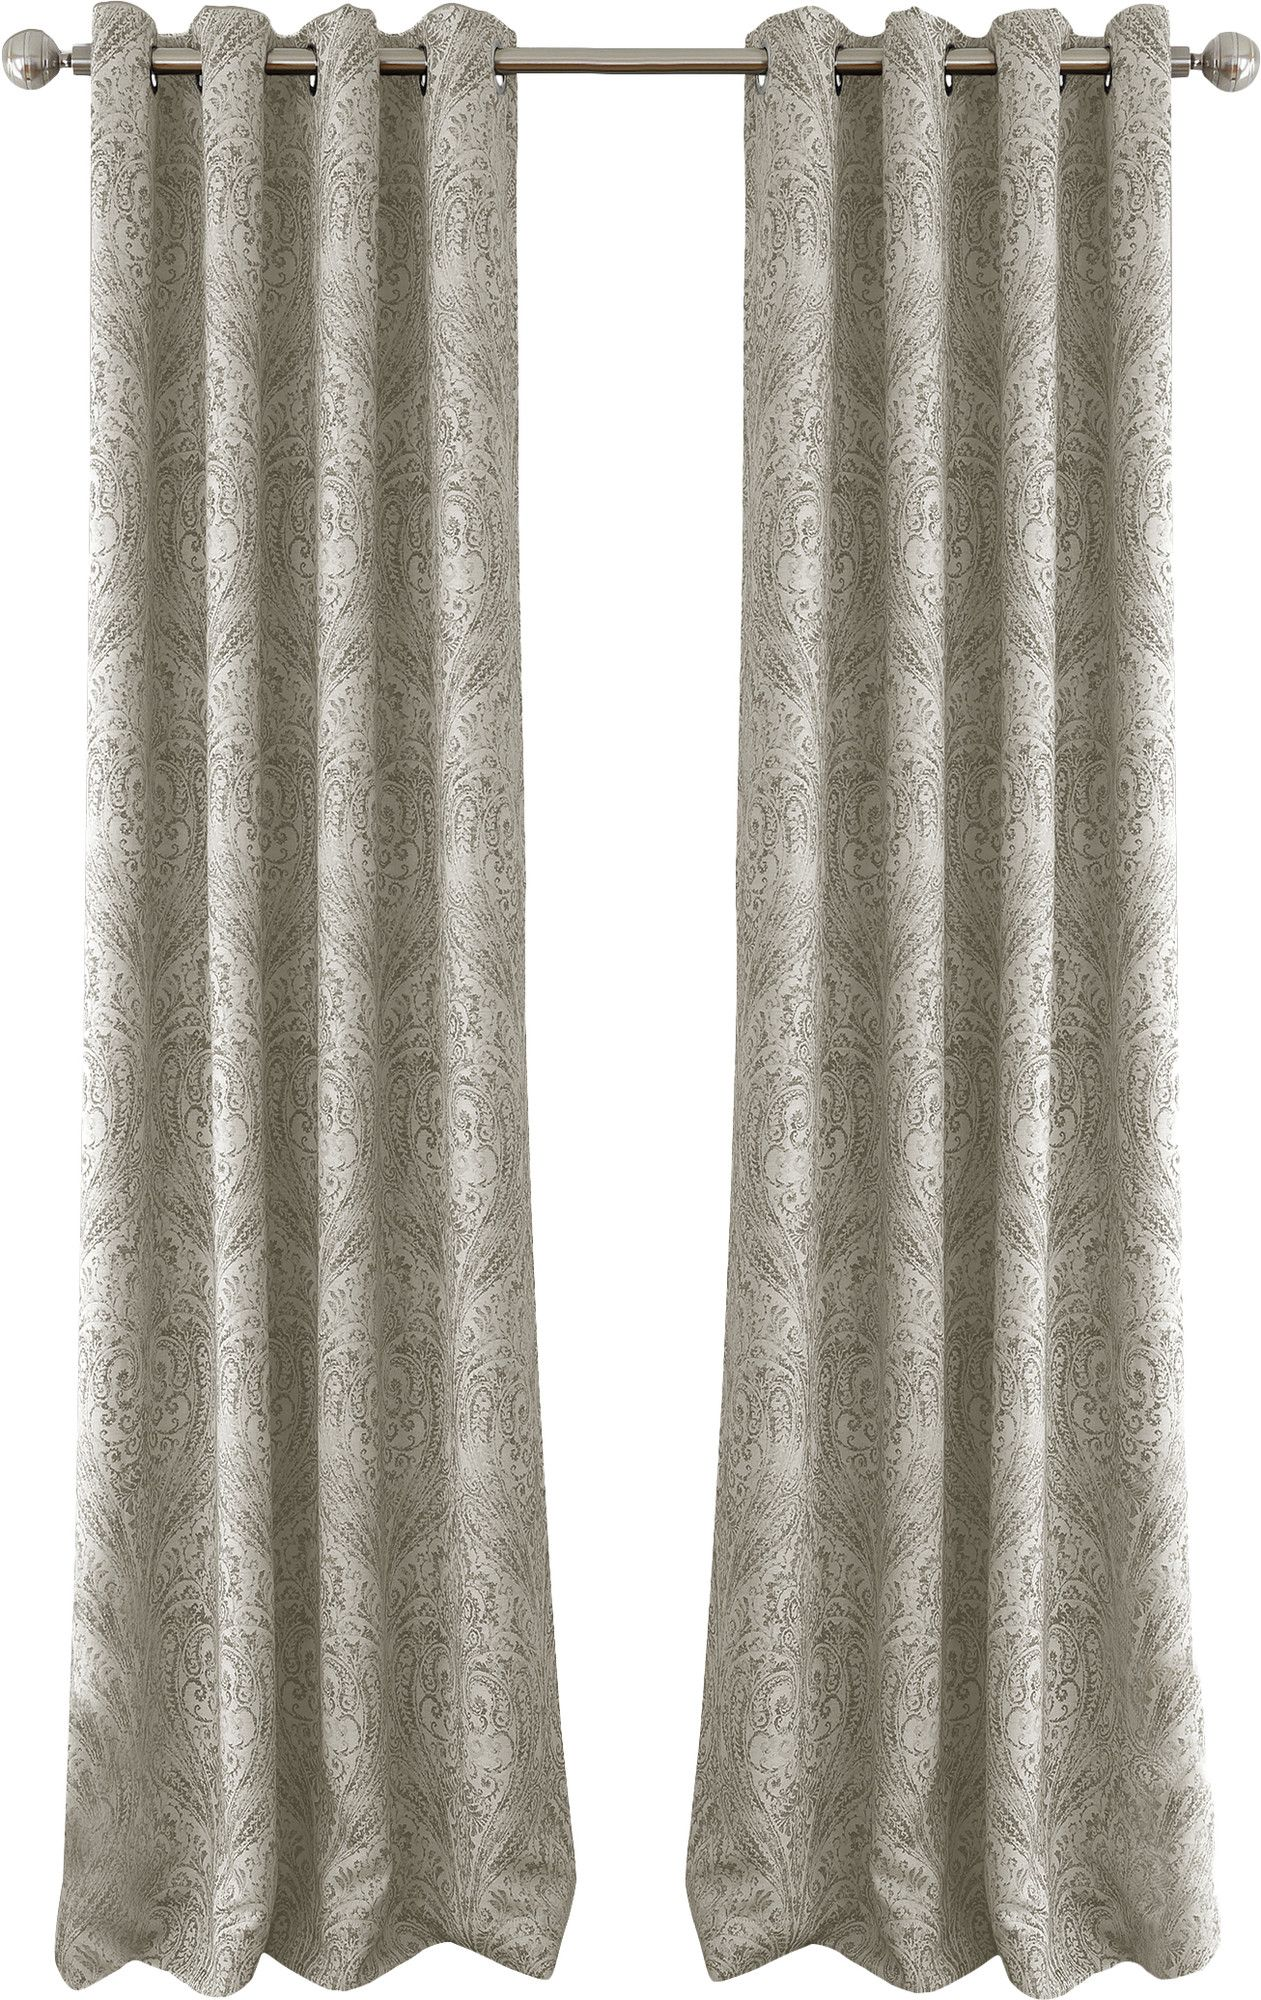 Brielle Paisley Grommet Single Curtain Panel